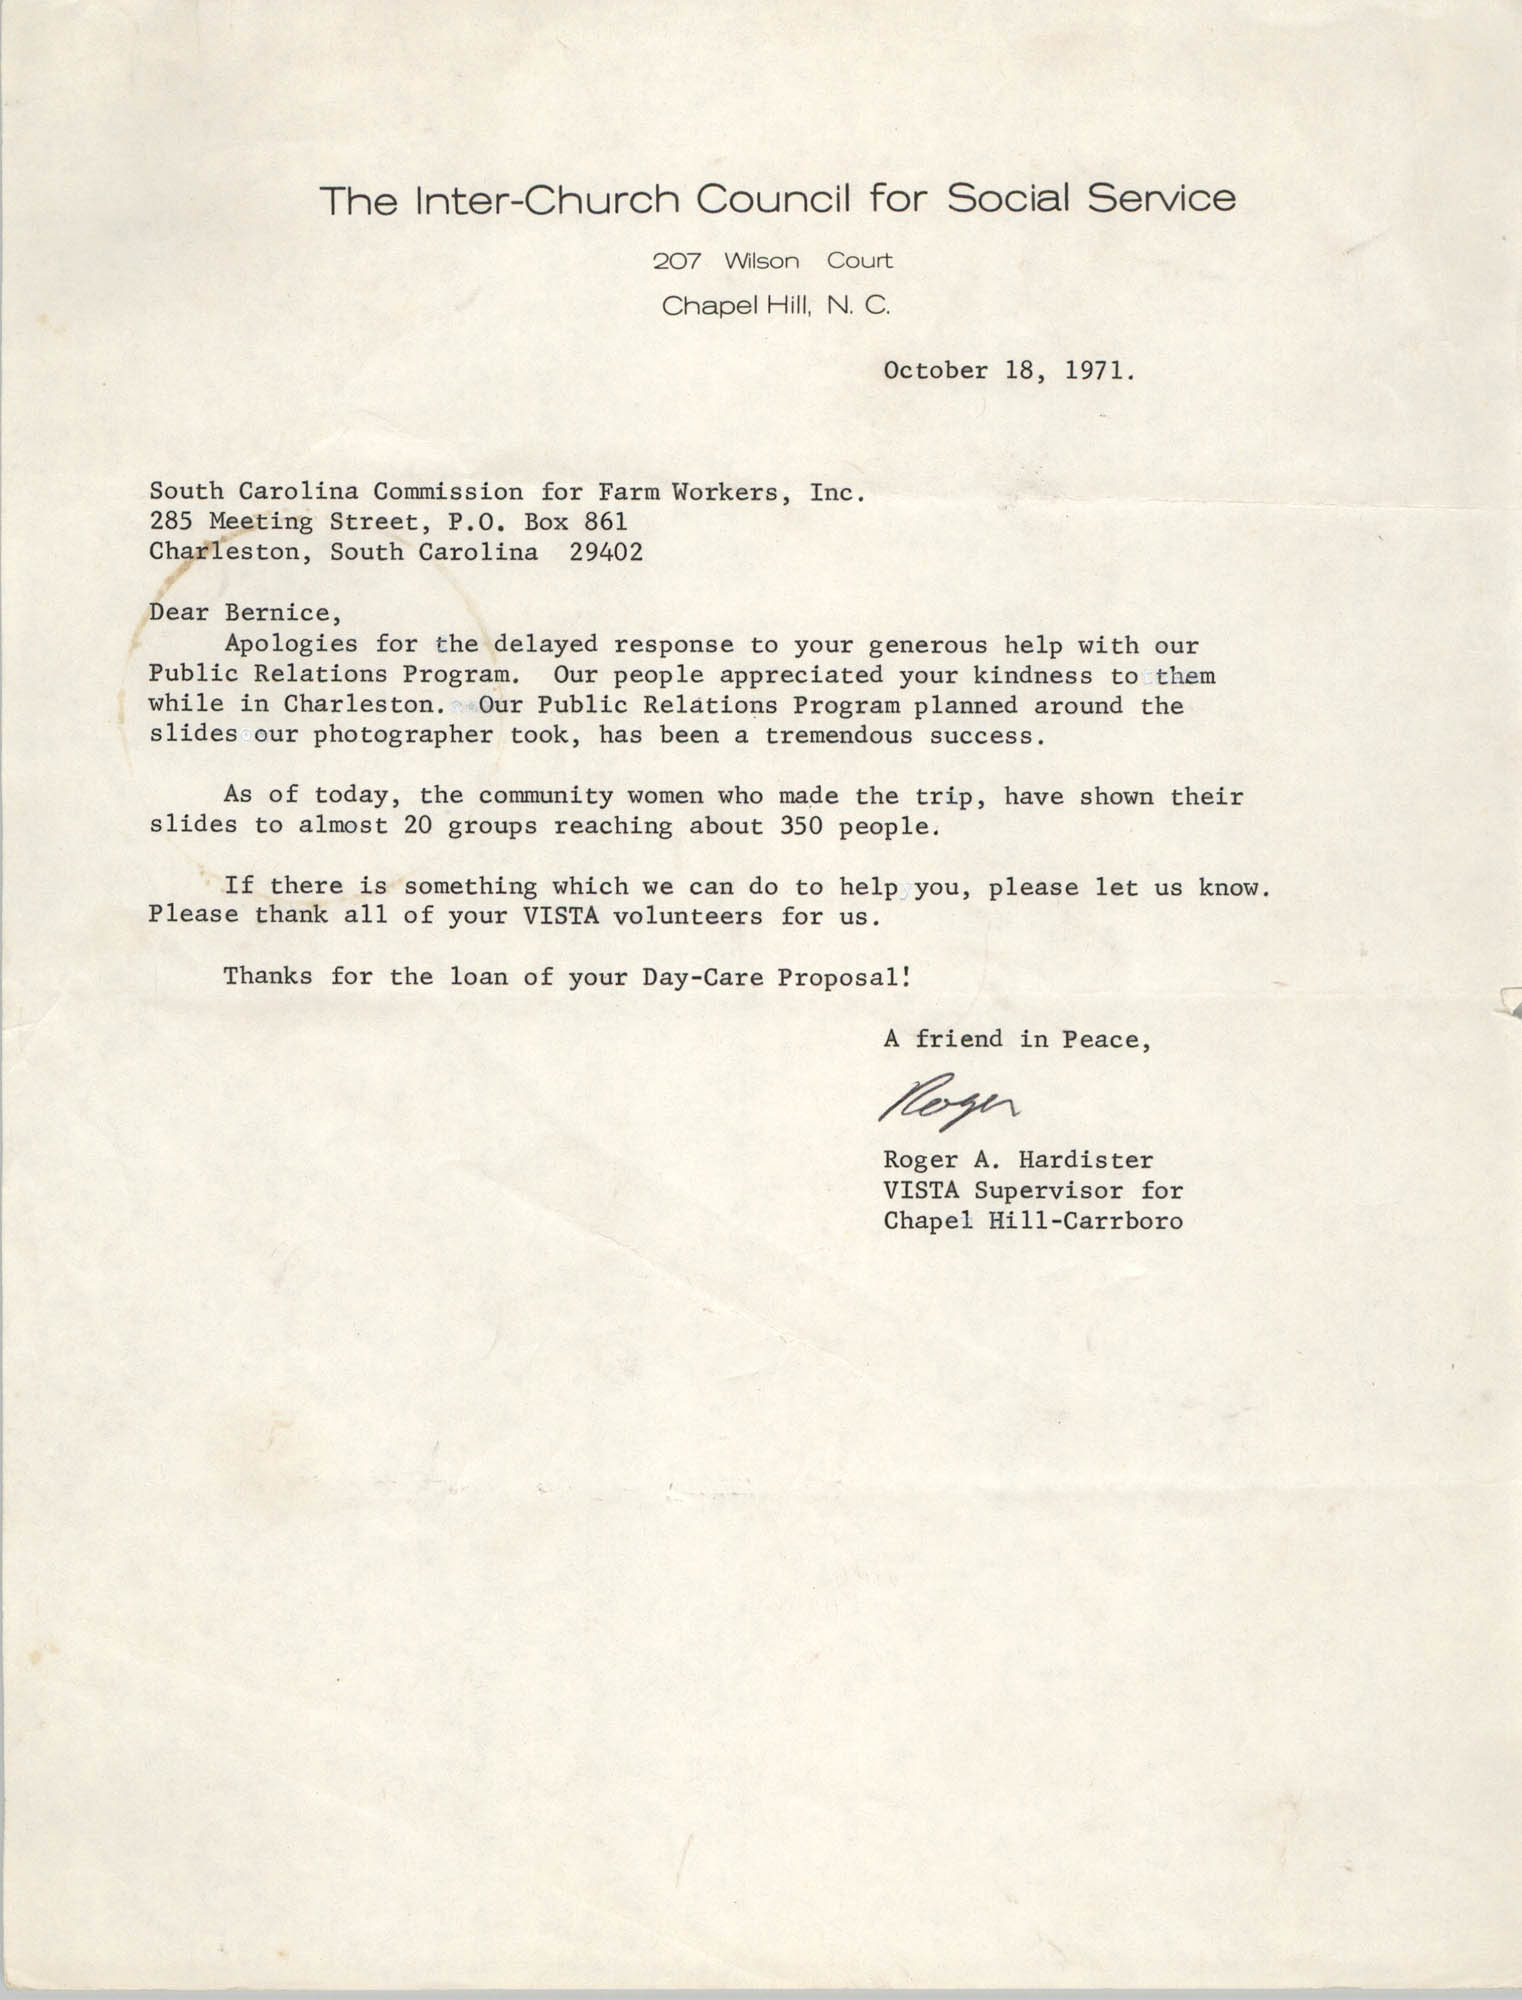 Letter from Roger A. Hardister to Bernice Robinson, October 18, 1971